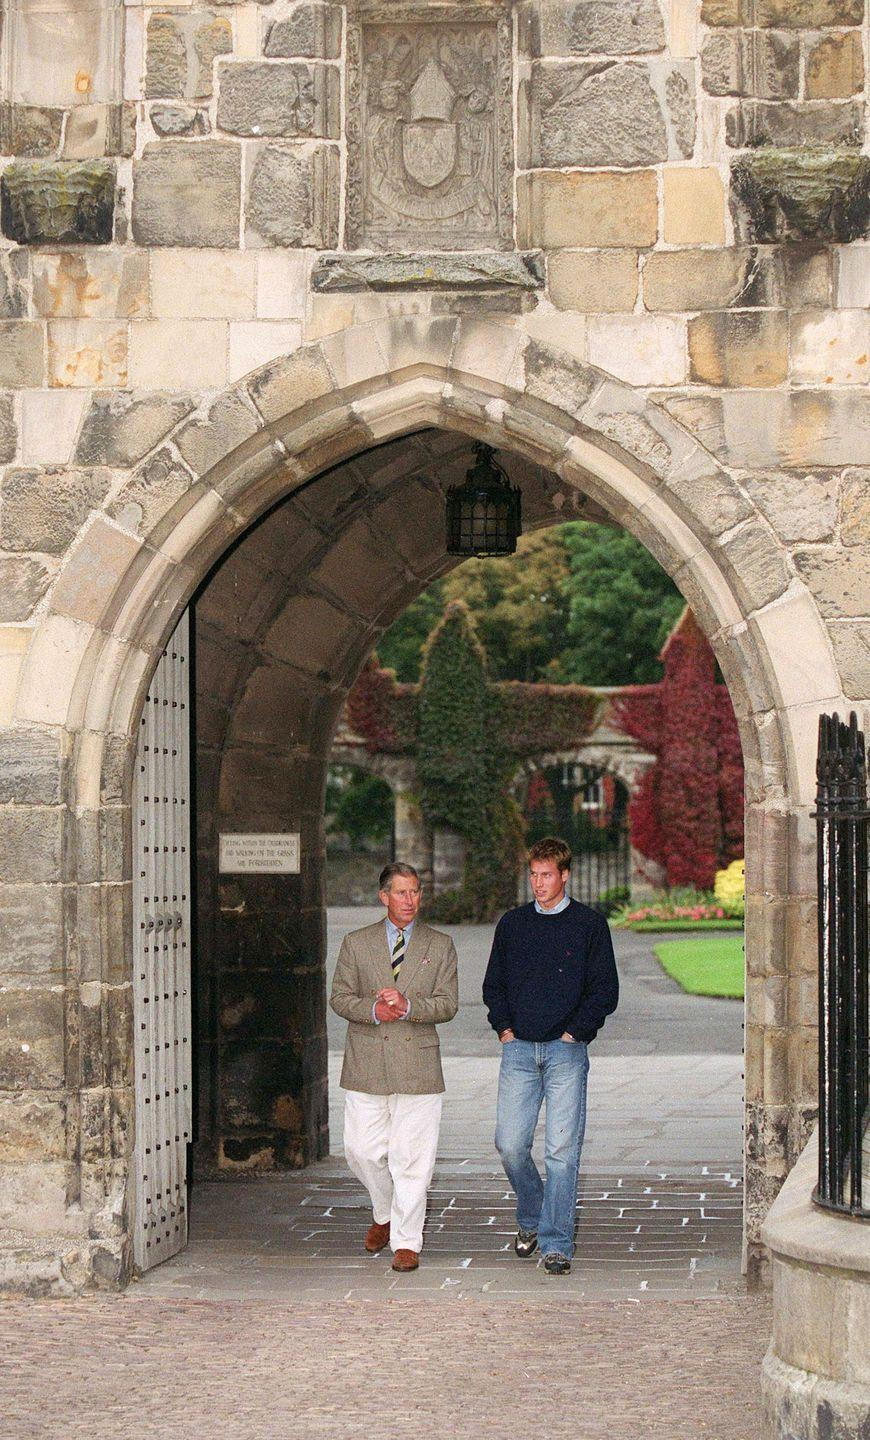 "<p>Prince Charles and Prince William walk around campus on <a href=""https://www.townandcountrymag.com/society/a10274881/st-andrews-scotland/"" rel=""nofollow noopener"" target=""_blank"" data-ylk=""slk:William's first day at St. Andrews University."" class=""link rapid-noclick-resp"">William's first day at St. Andrews University. </a></p>"